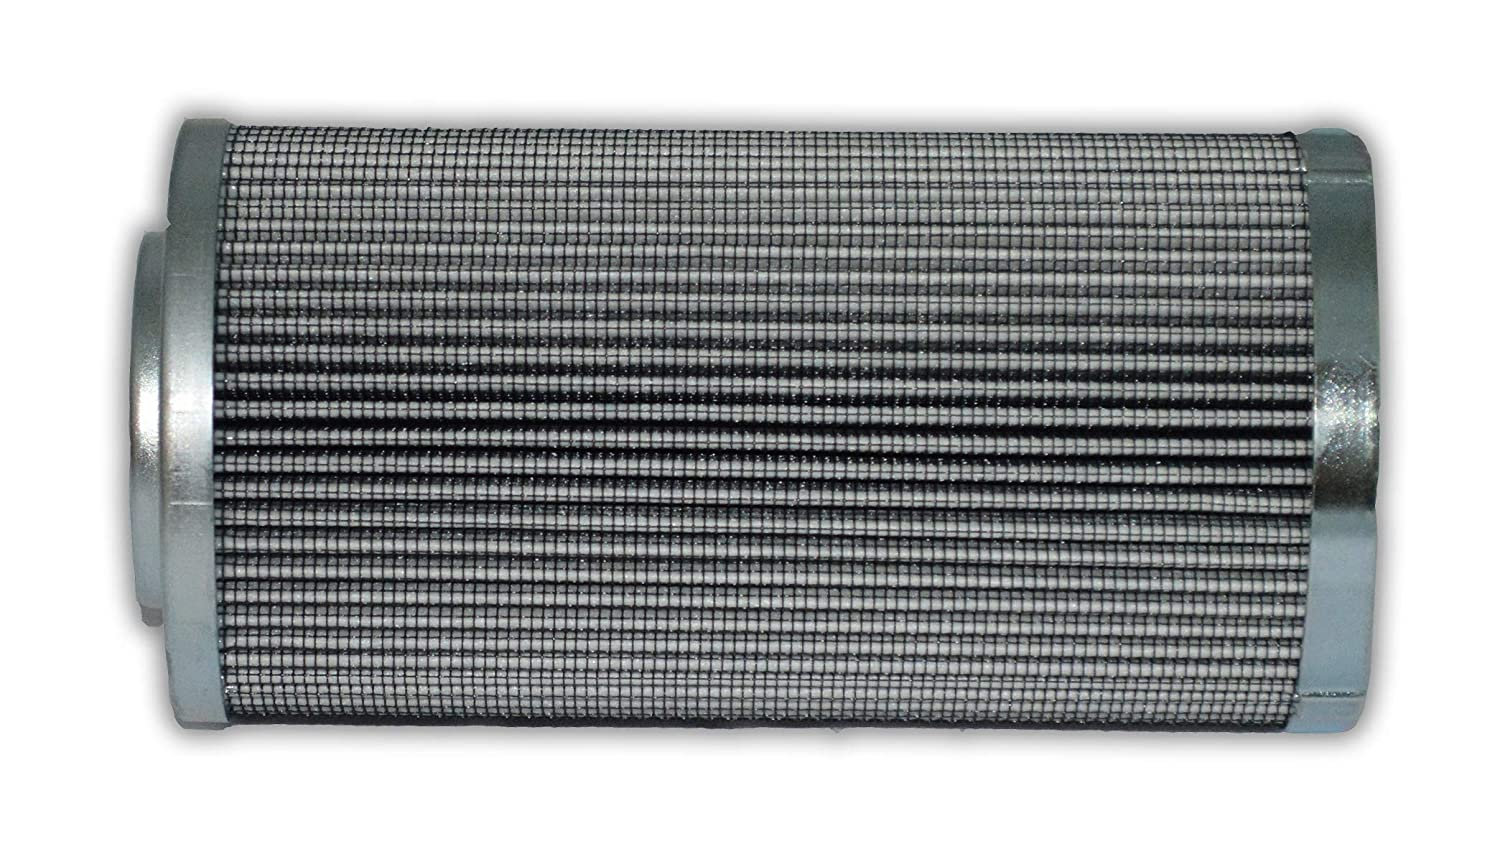 Parker PR4535Q Heavy Duty Replacement Hydraulic Filter Element from Big Filter